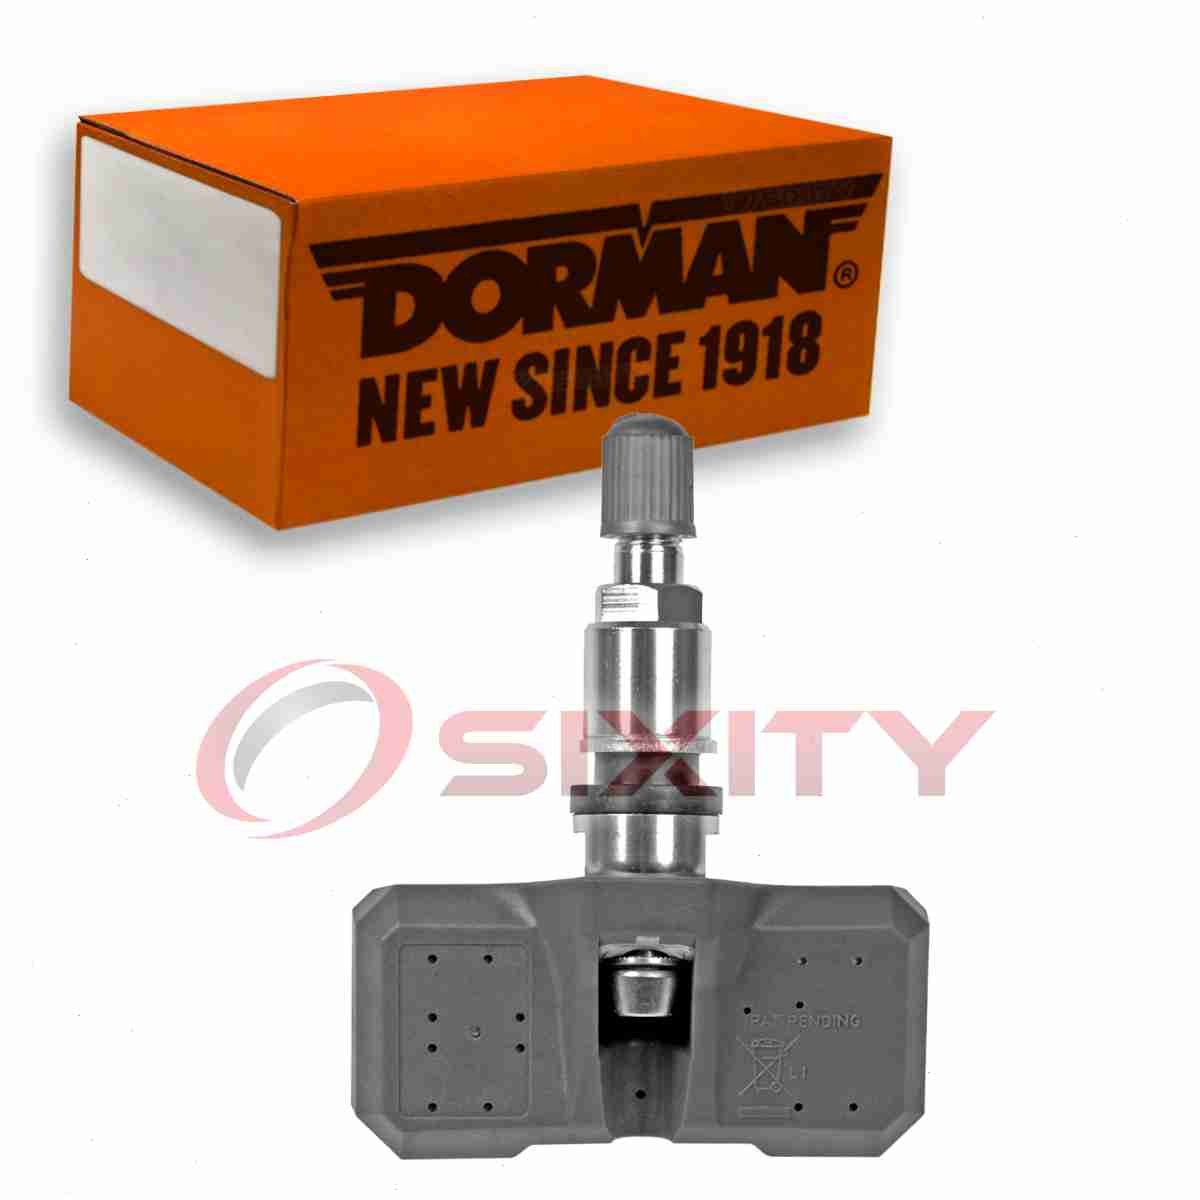 Chevy Cruze Tire Pressure >> Wheels Tires Parts Dorman Tpms Sensor For Chevy Cruze